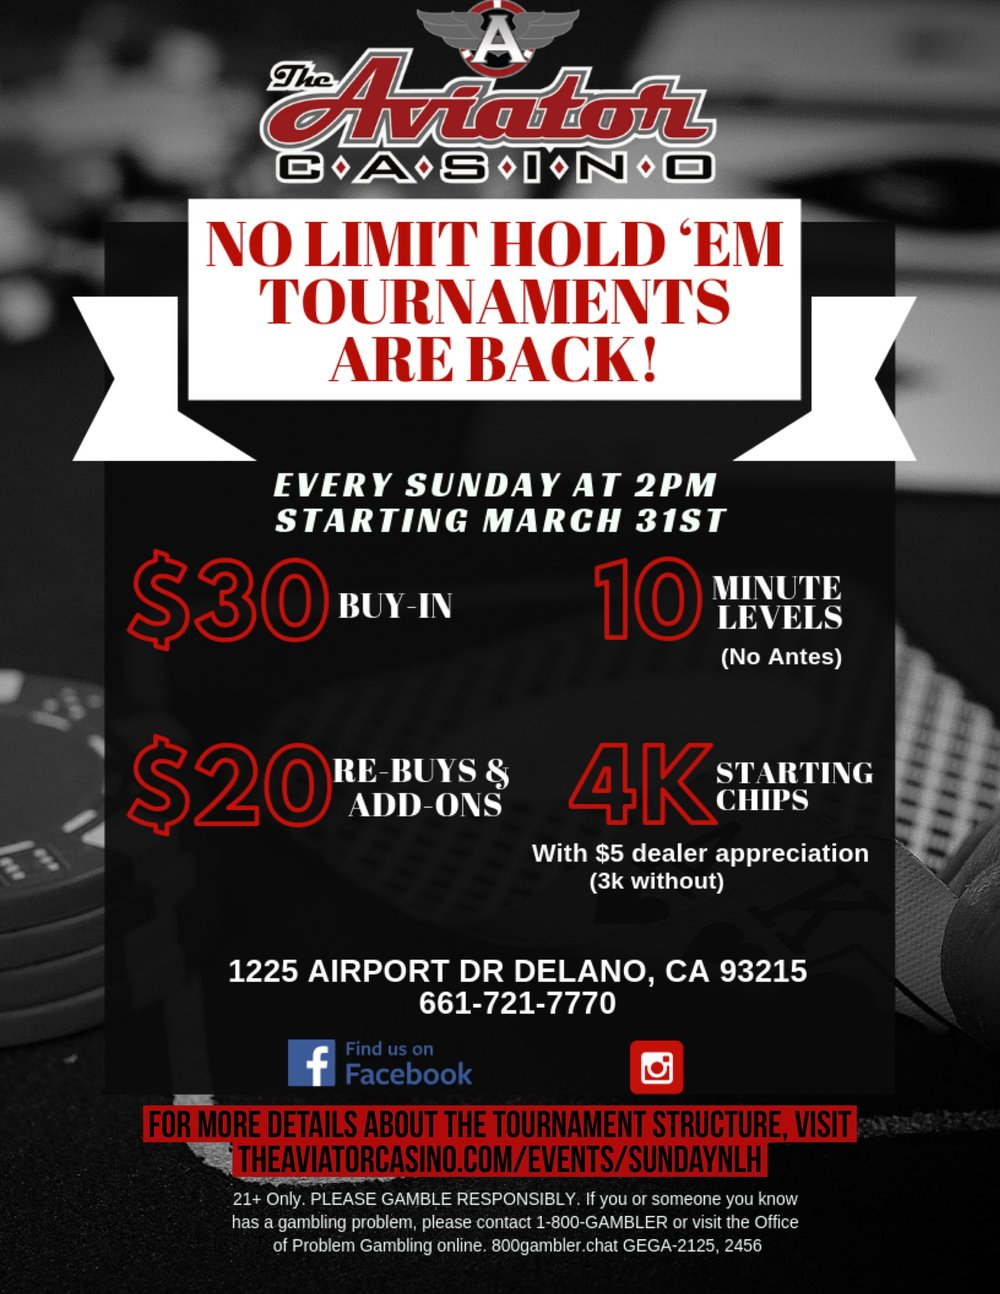 Sunday at 2PM - No Limit Hold 'Em Tournaments are back starting March 31st at 2PM! It's only a $30 buy-in!